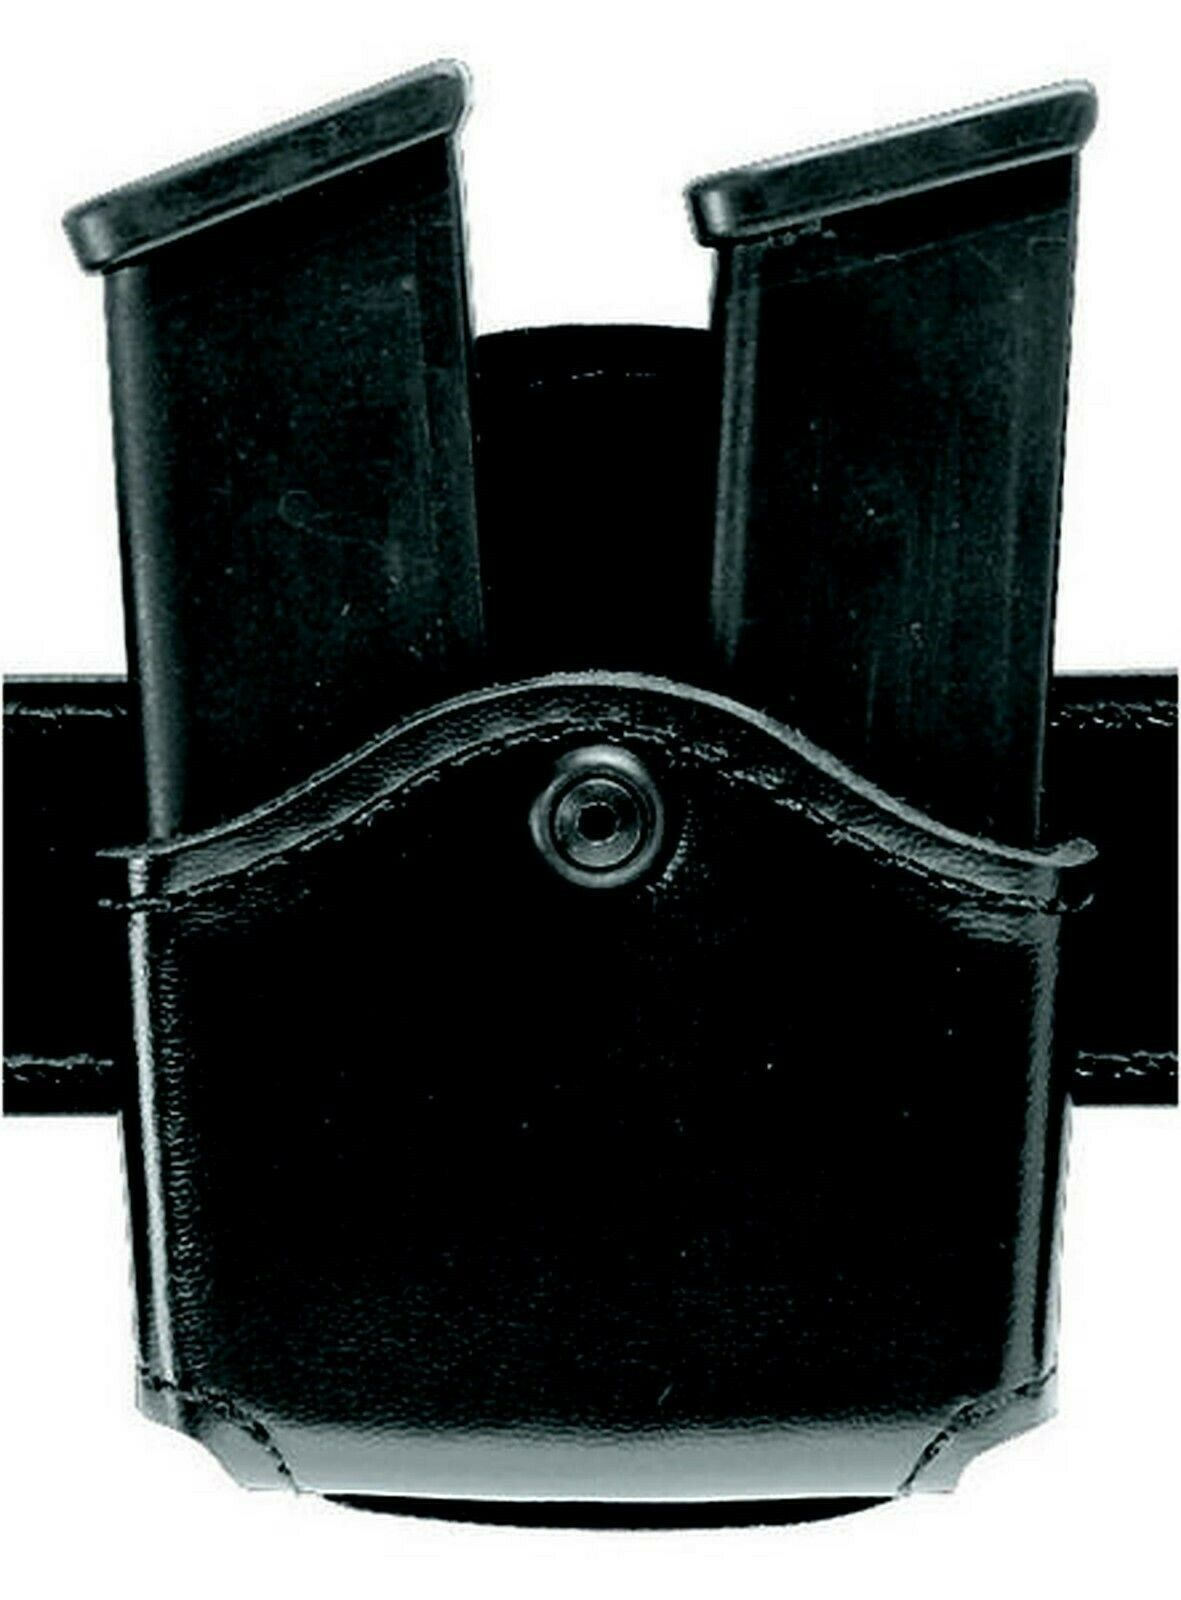 Model 572 Open Top Double Magazine Pouch - Paddle 572-76-2